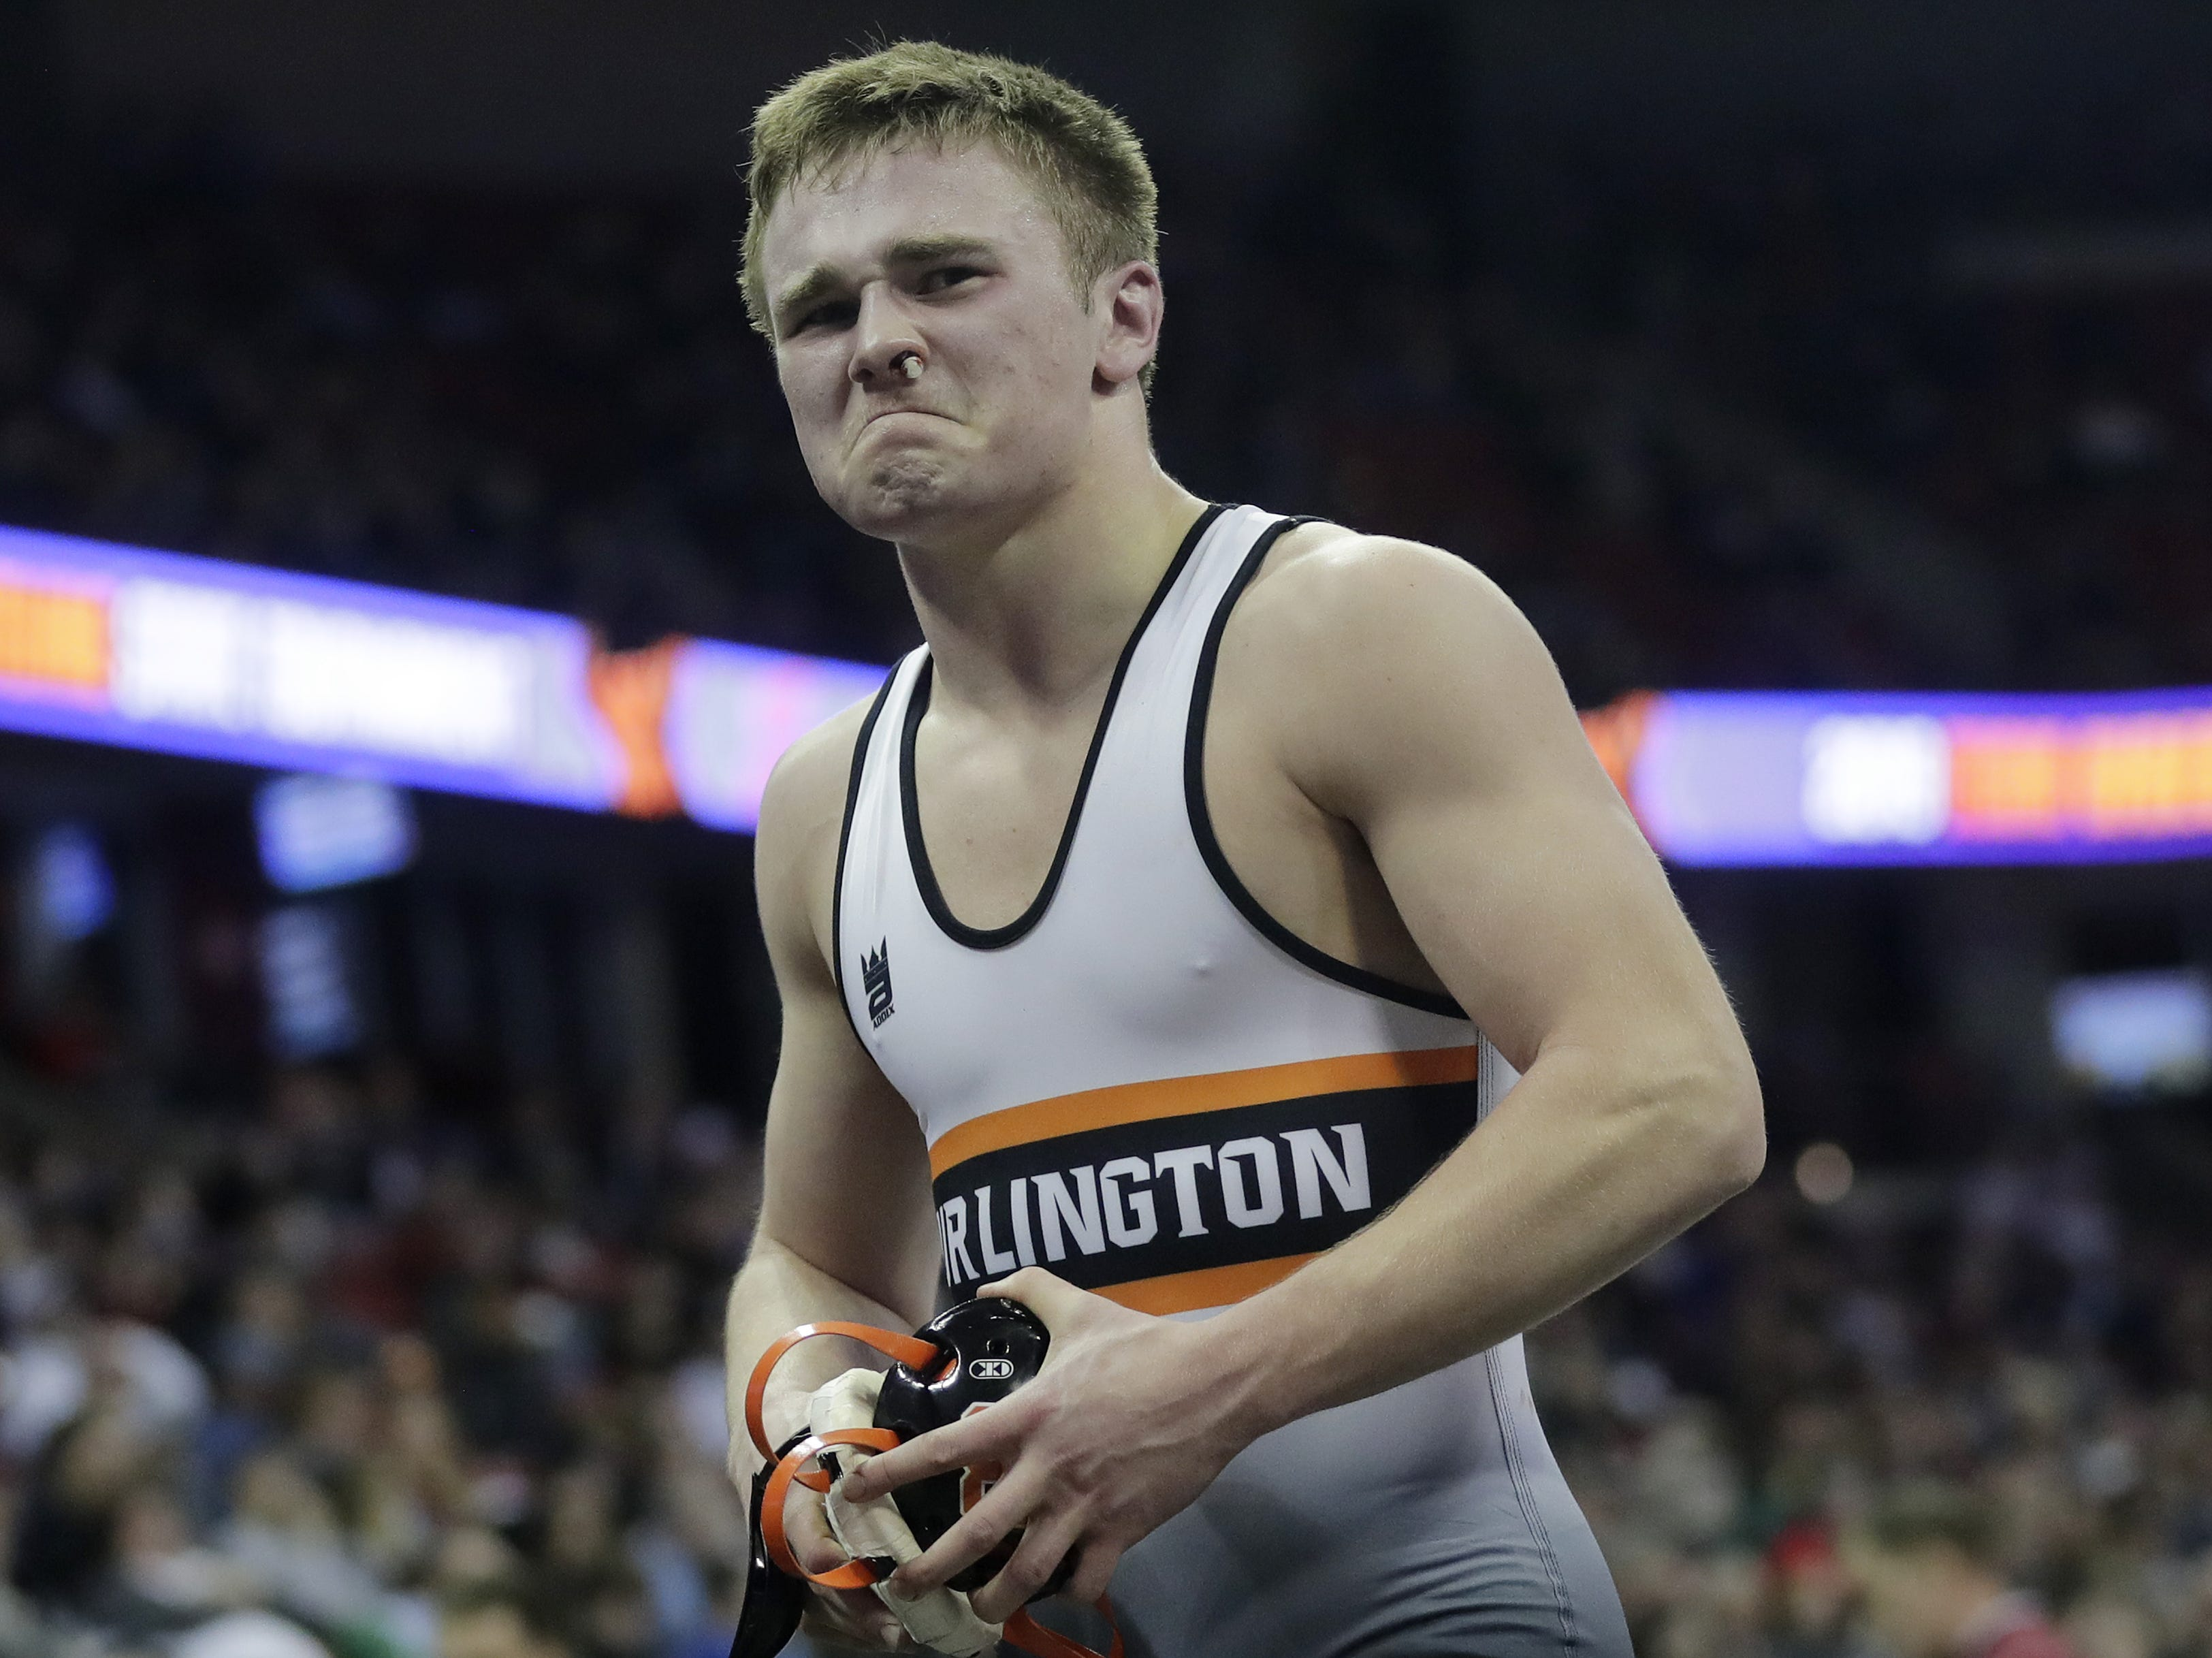 Burlington's Qwade Gehring walks off the mat after losing a Division 1 170-pound preliminary match at the WIAA state individual wrestling tournament at the Kohl Center on Thursday, February 21, 2019 in Madison, Wis. Adam Wesley/USA TODAY NETWORK-Wisconsin